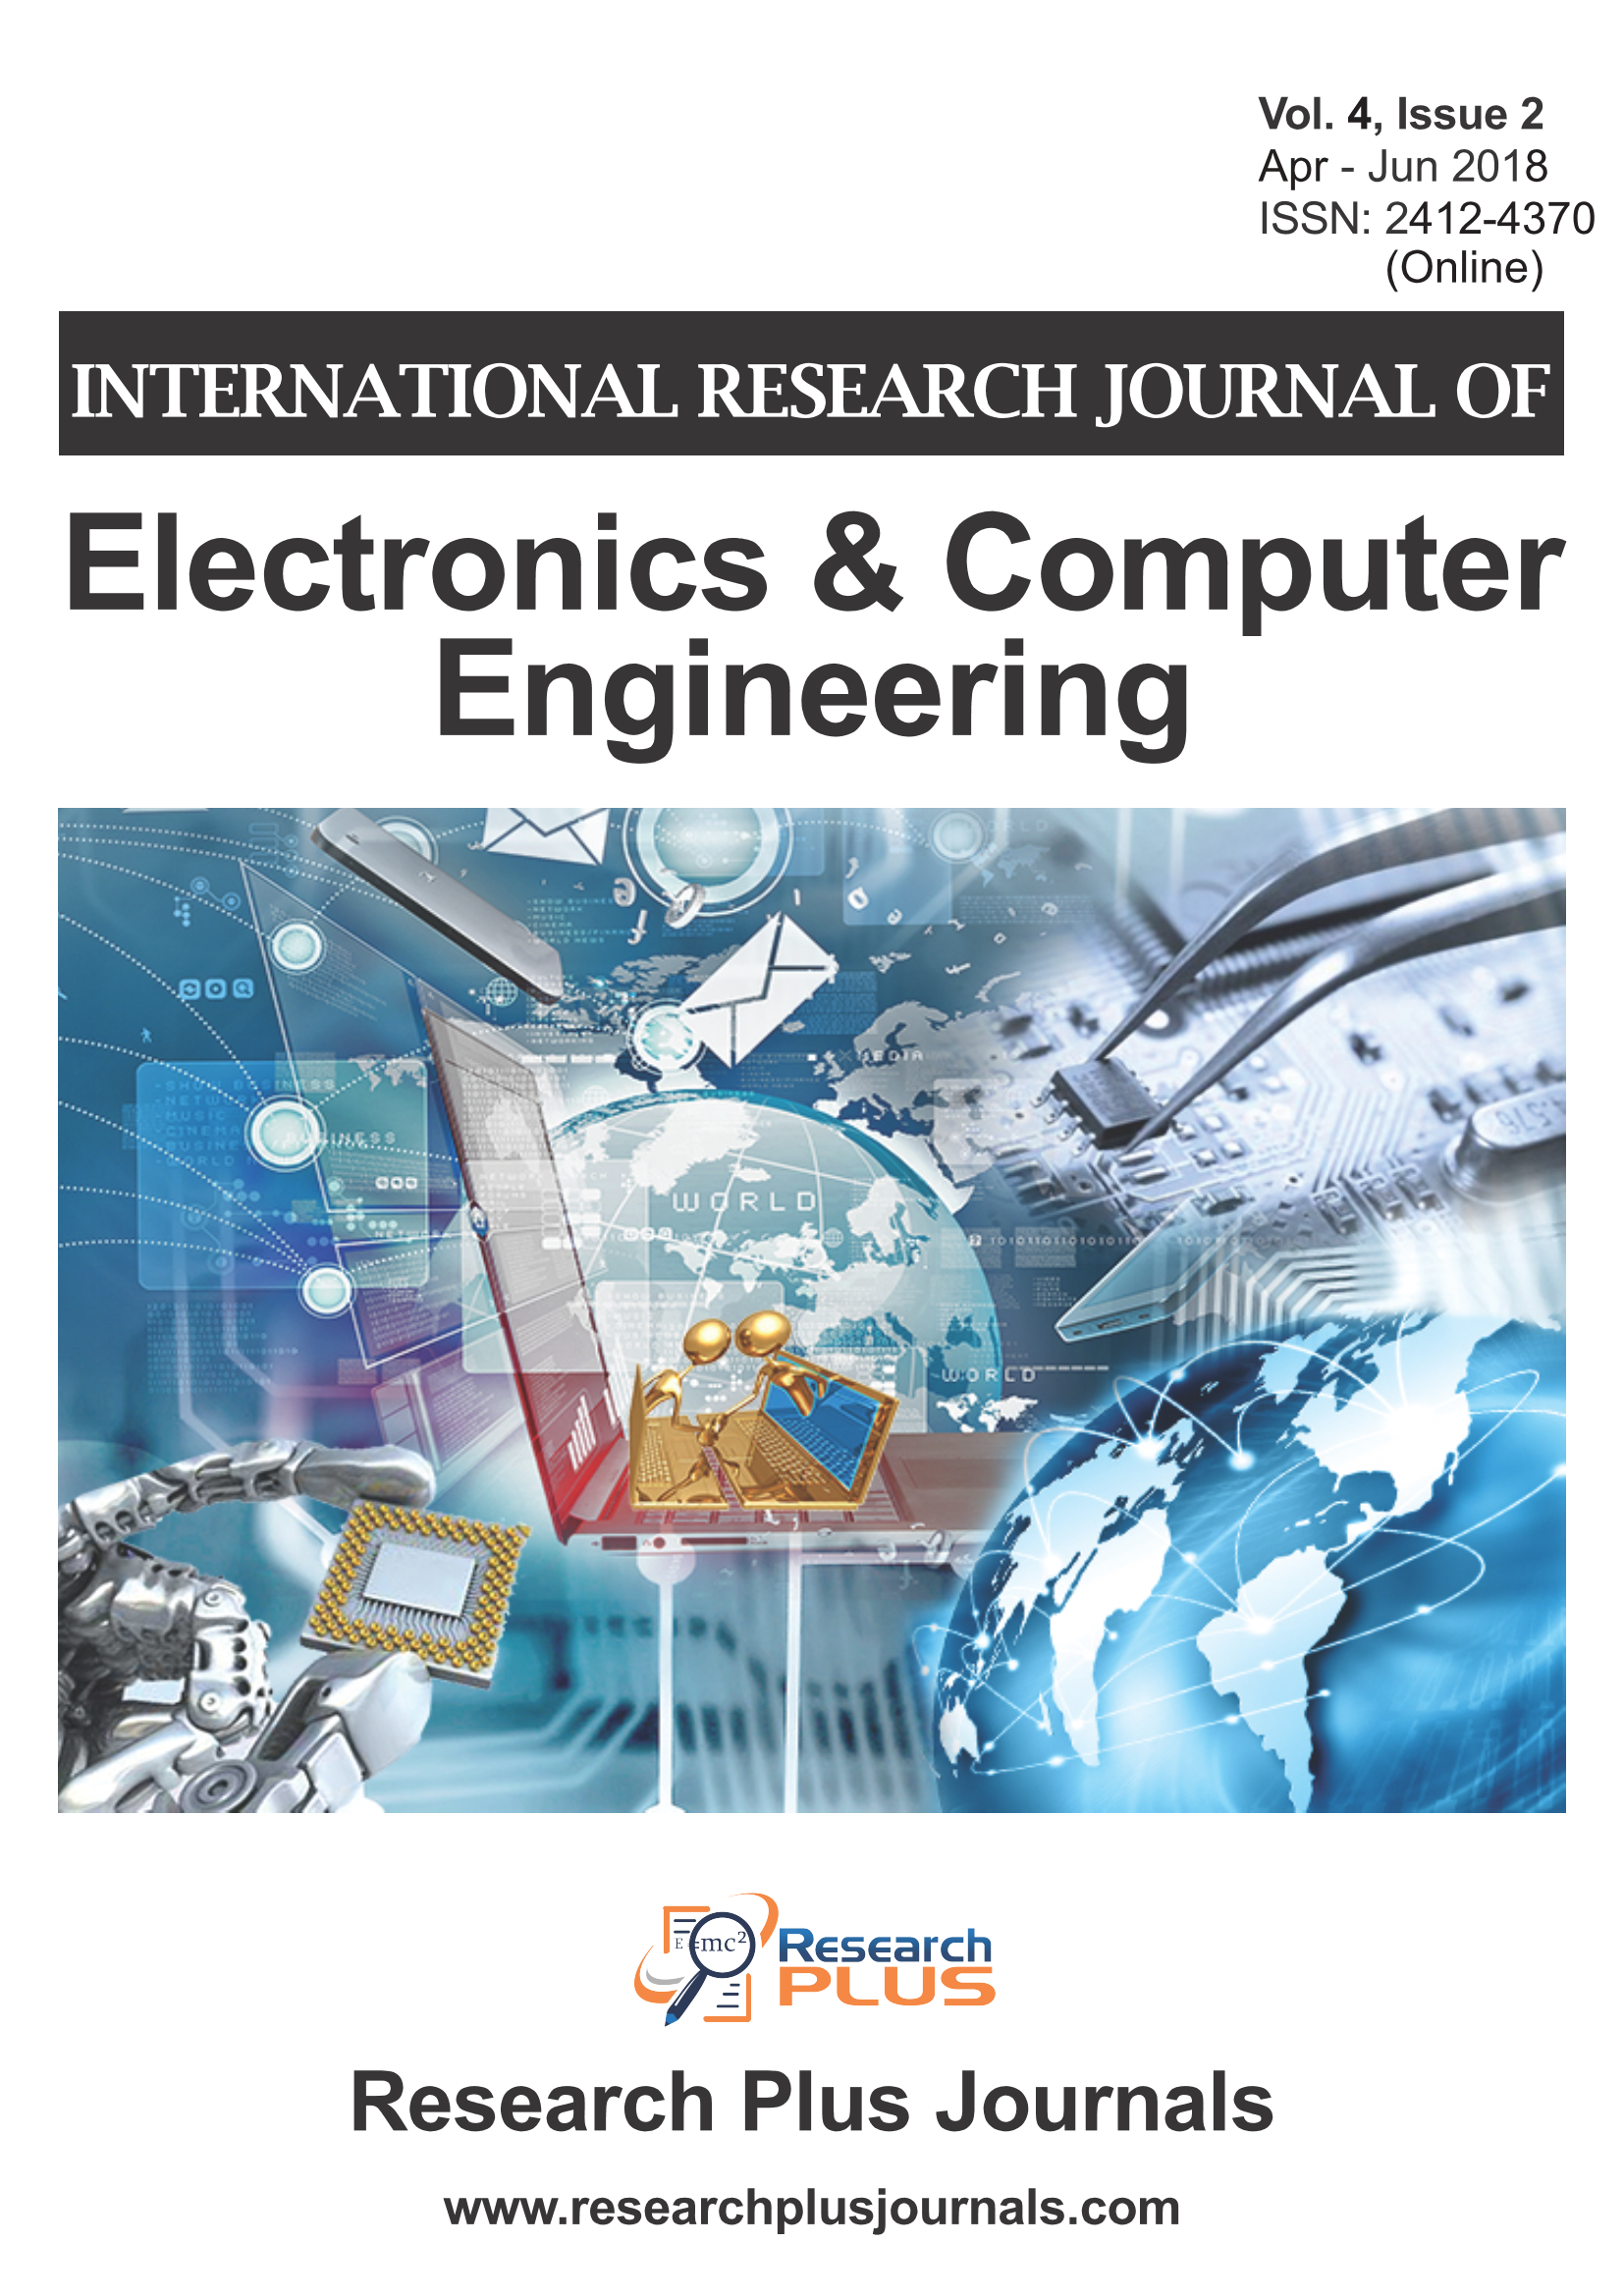 Volume 4, Issue 2, International Research Journal of Electronics & Computer Engineering (IRJECE) (Online ISSN : 2412-4370)